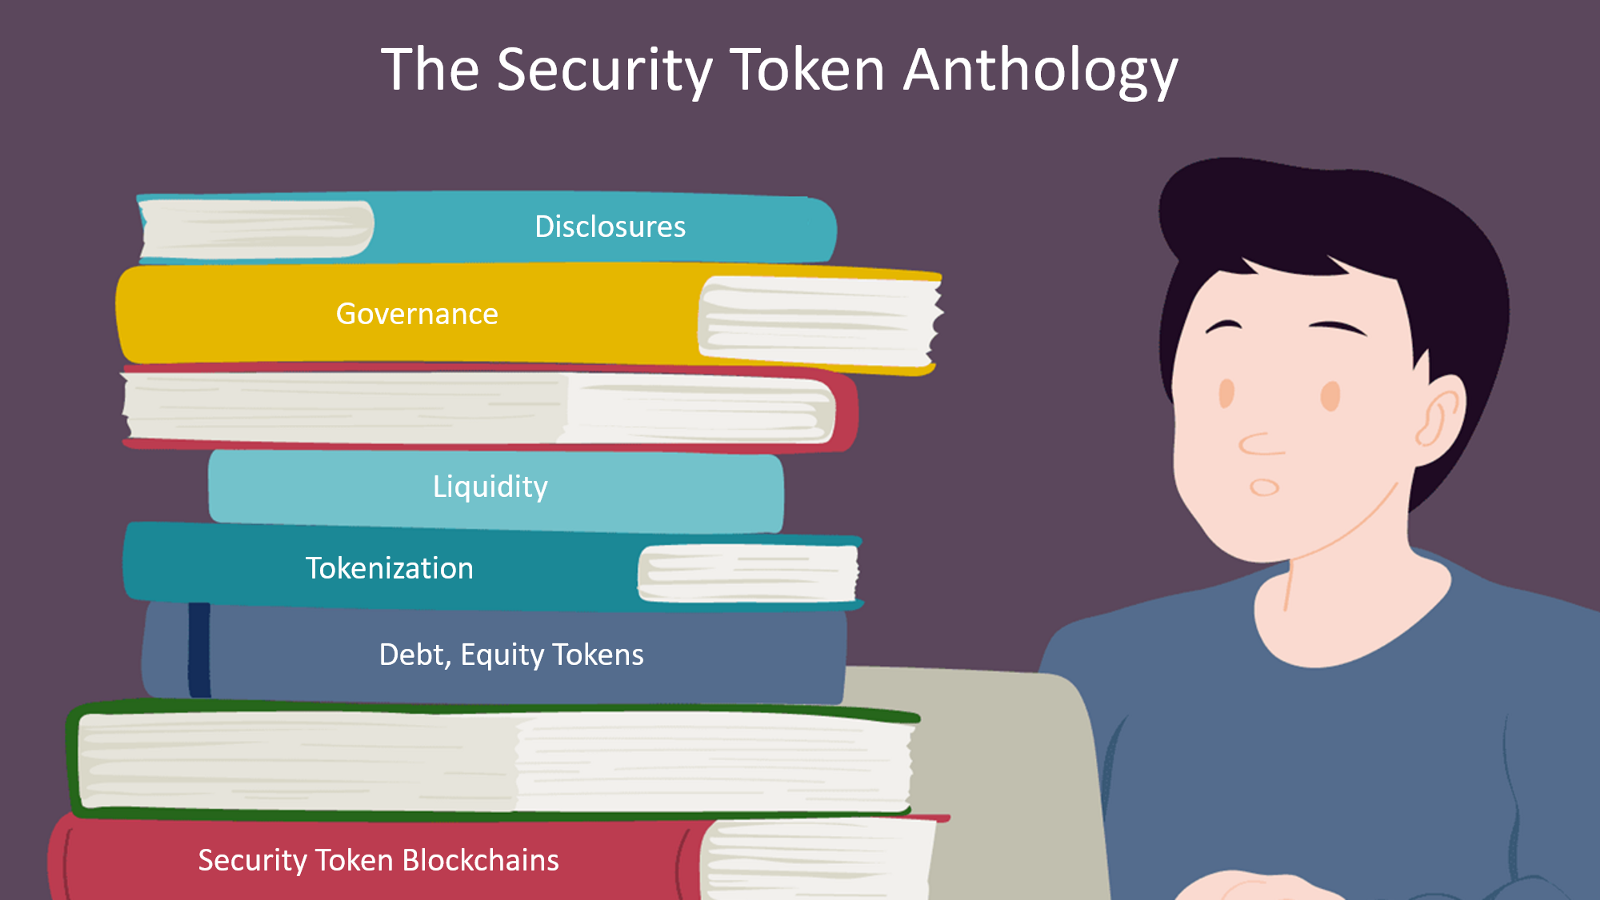 /the-security-token-anthology-march-2019-edition-7b87925fe8ee feature image